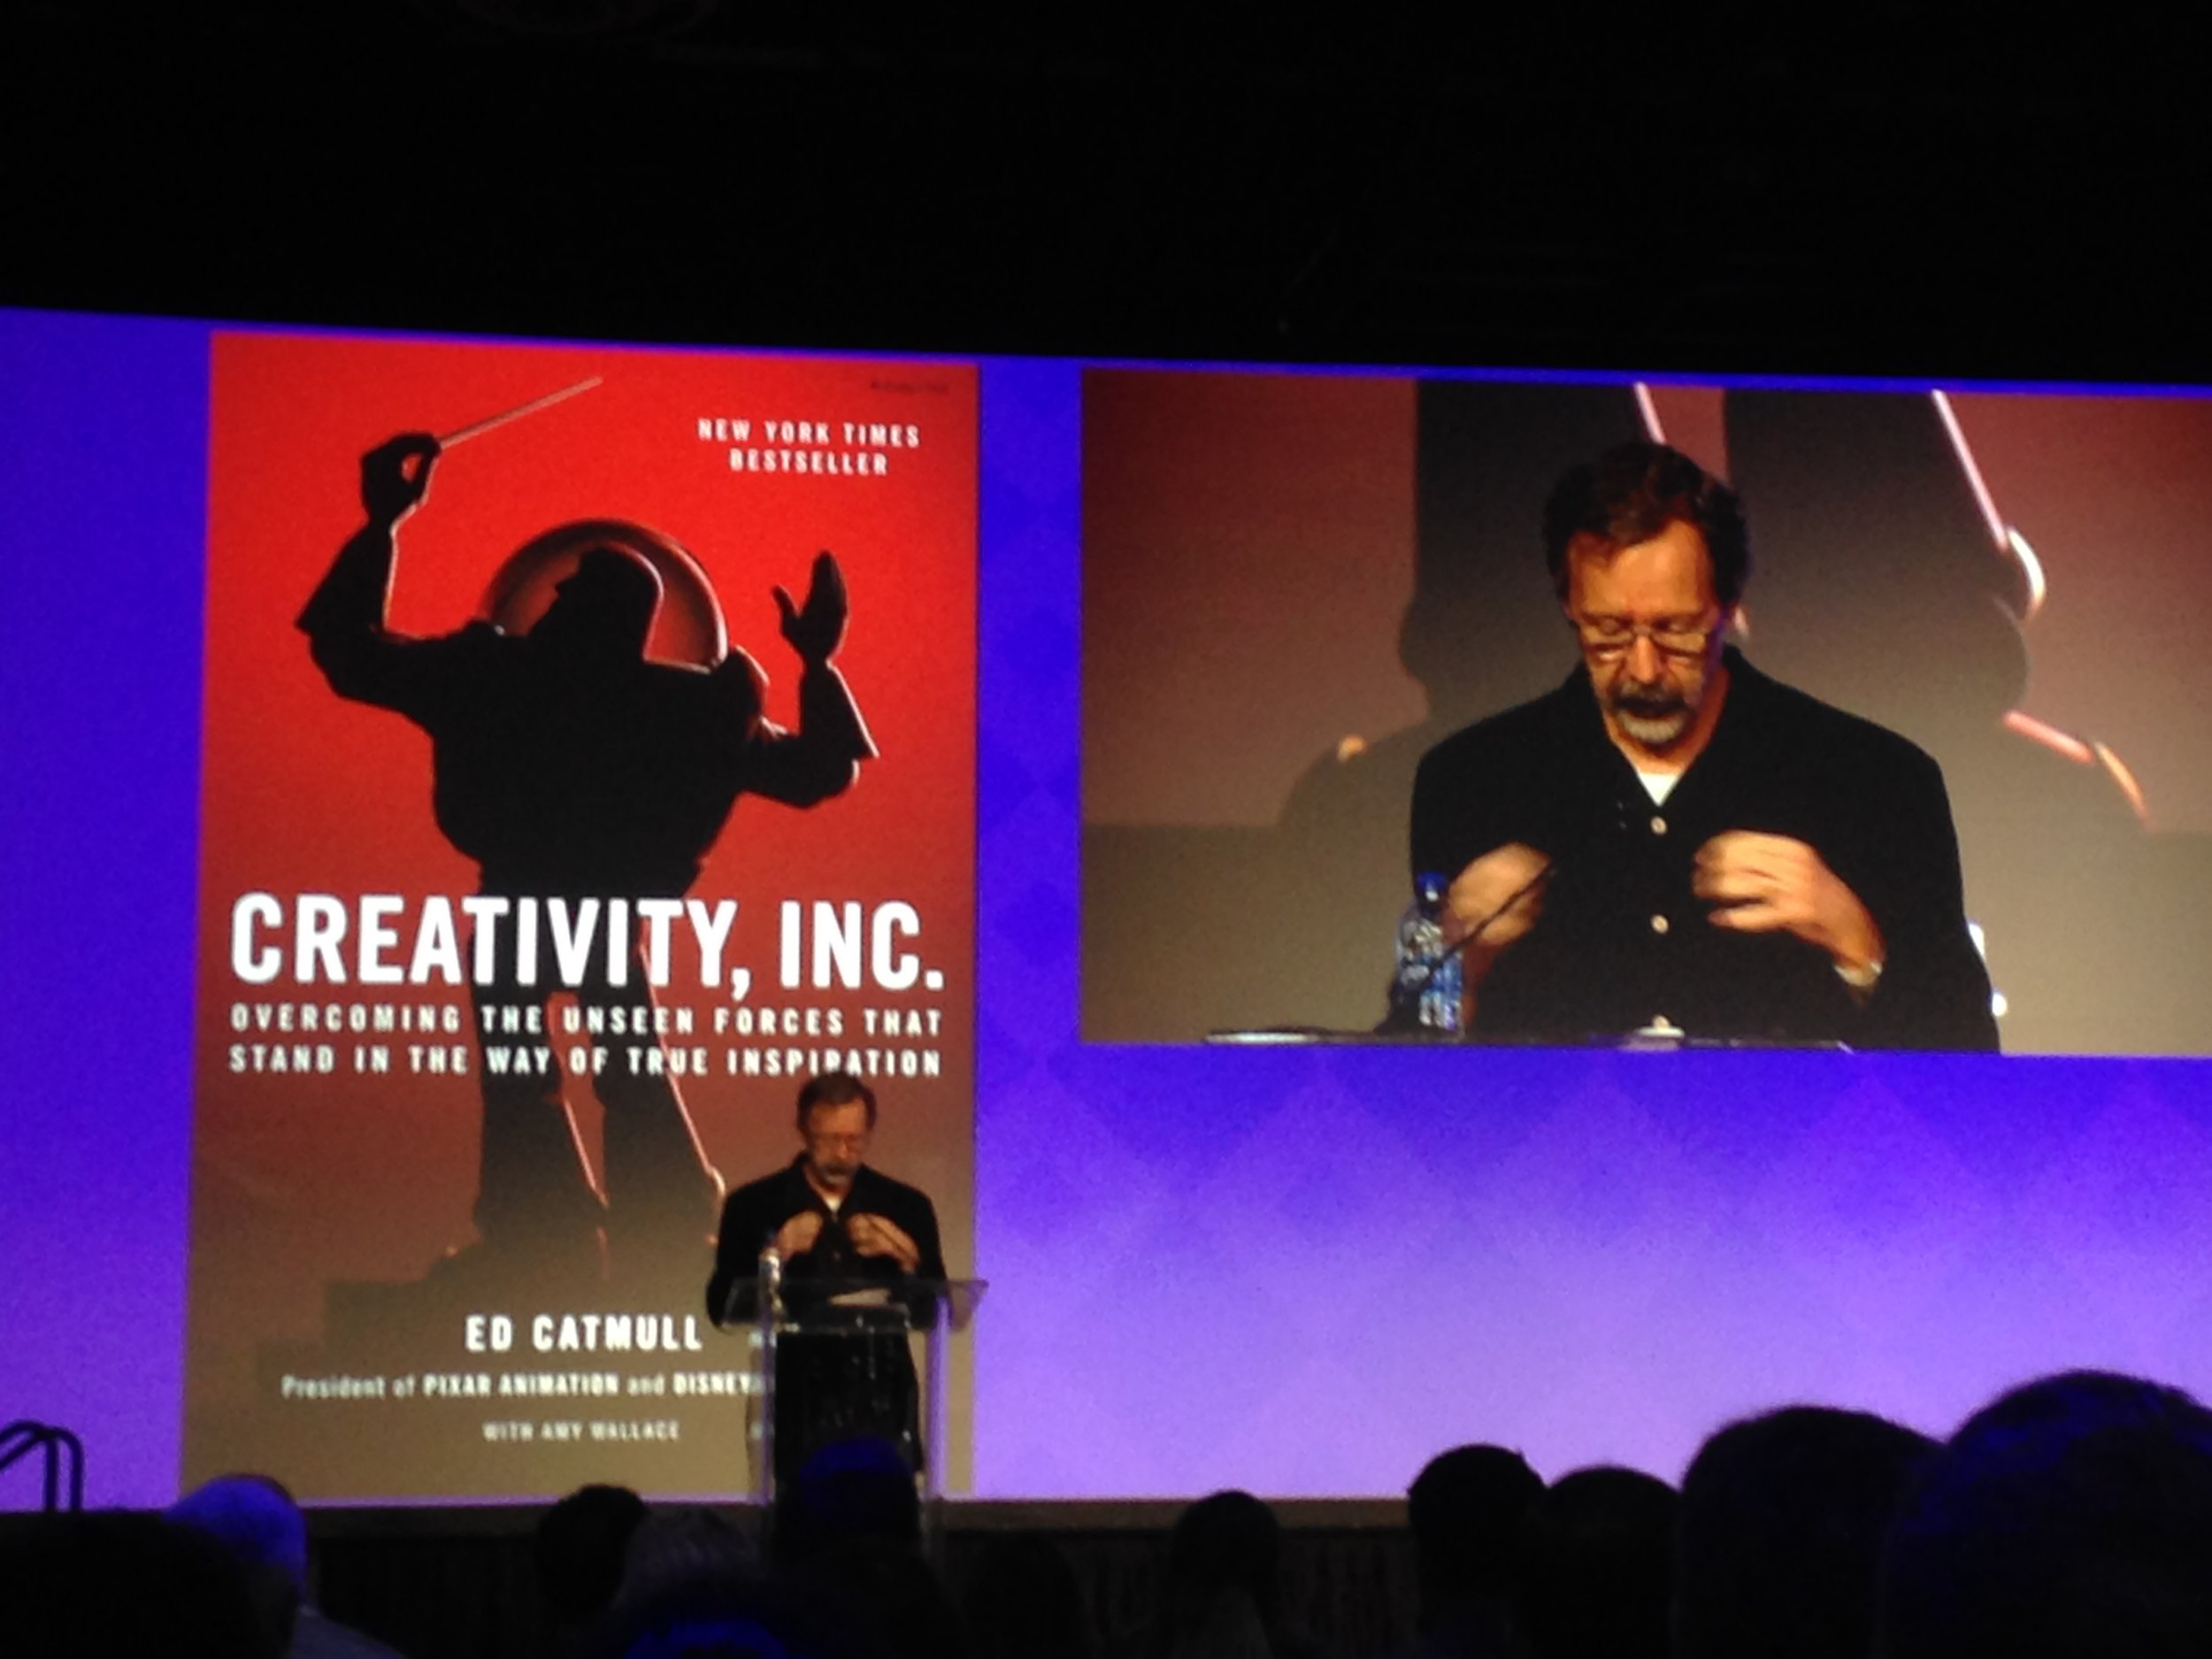 Co-founder and President of Pixar and Disney, Ed Catmull on Creativity